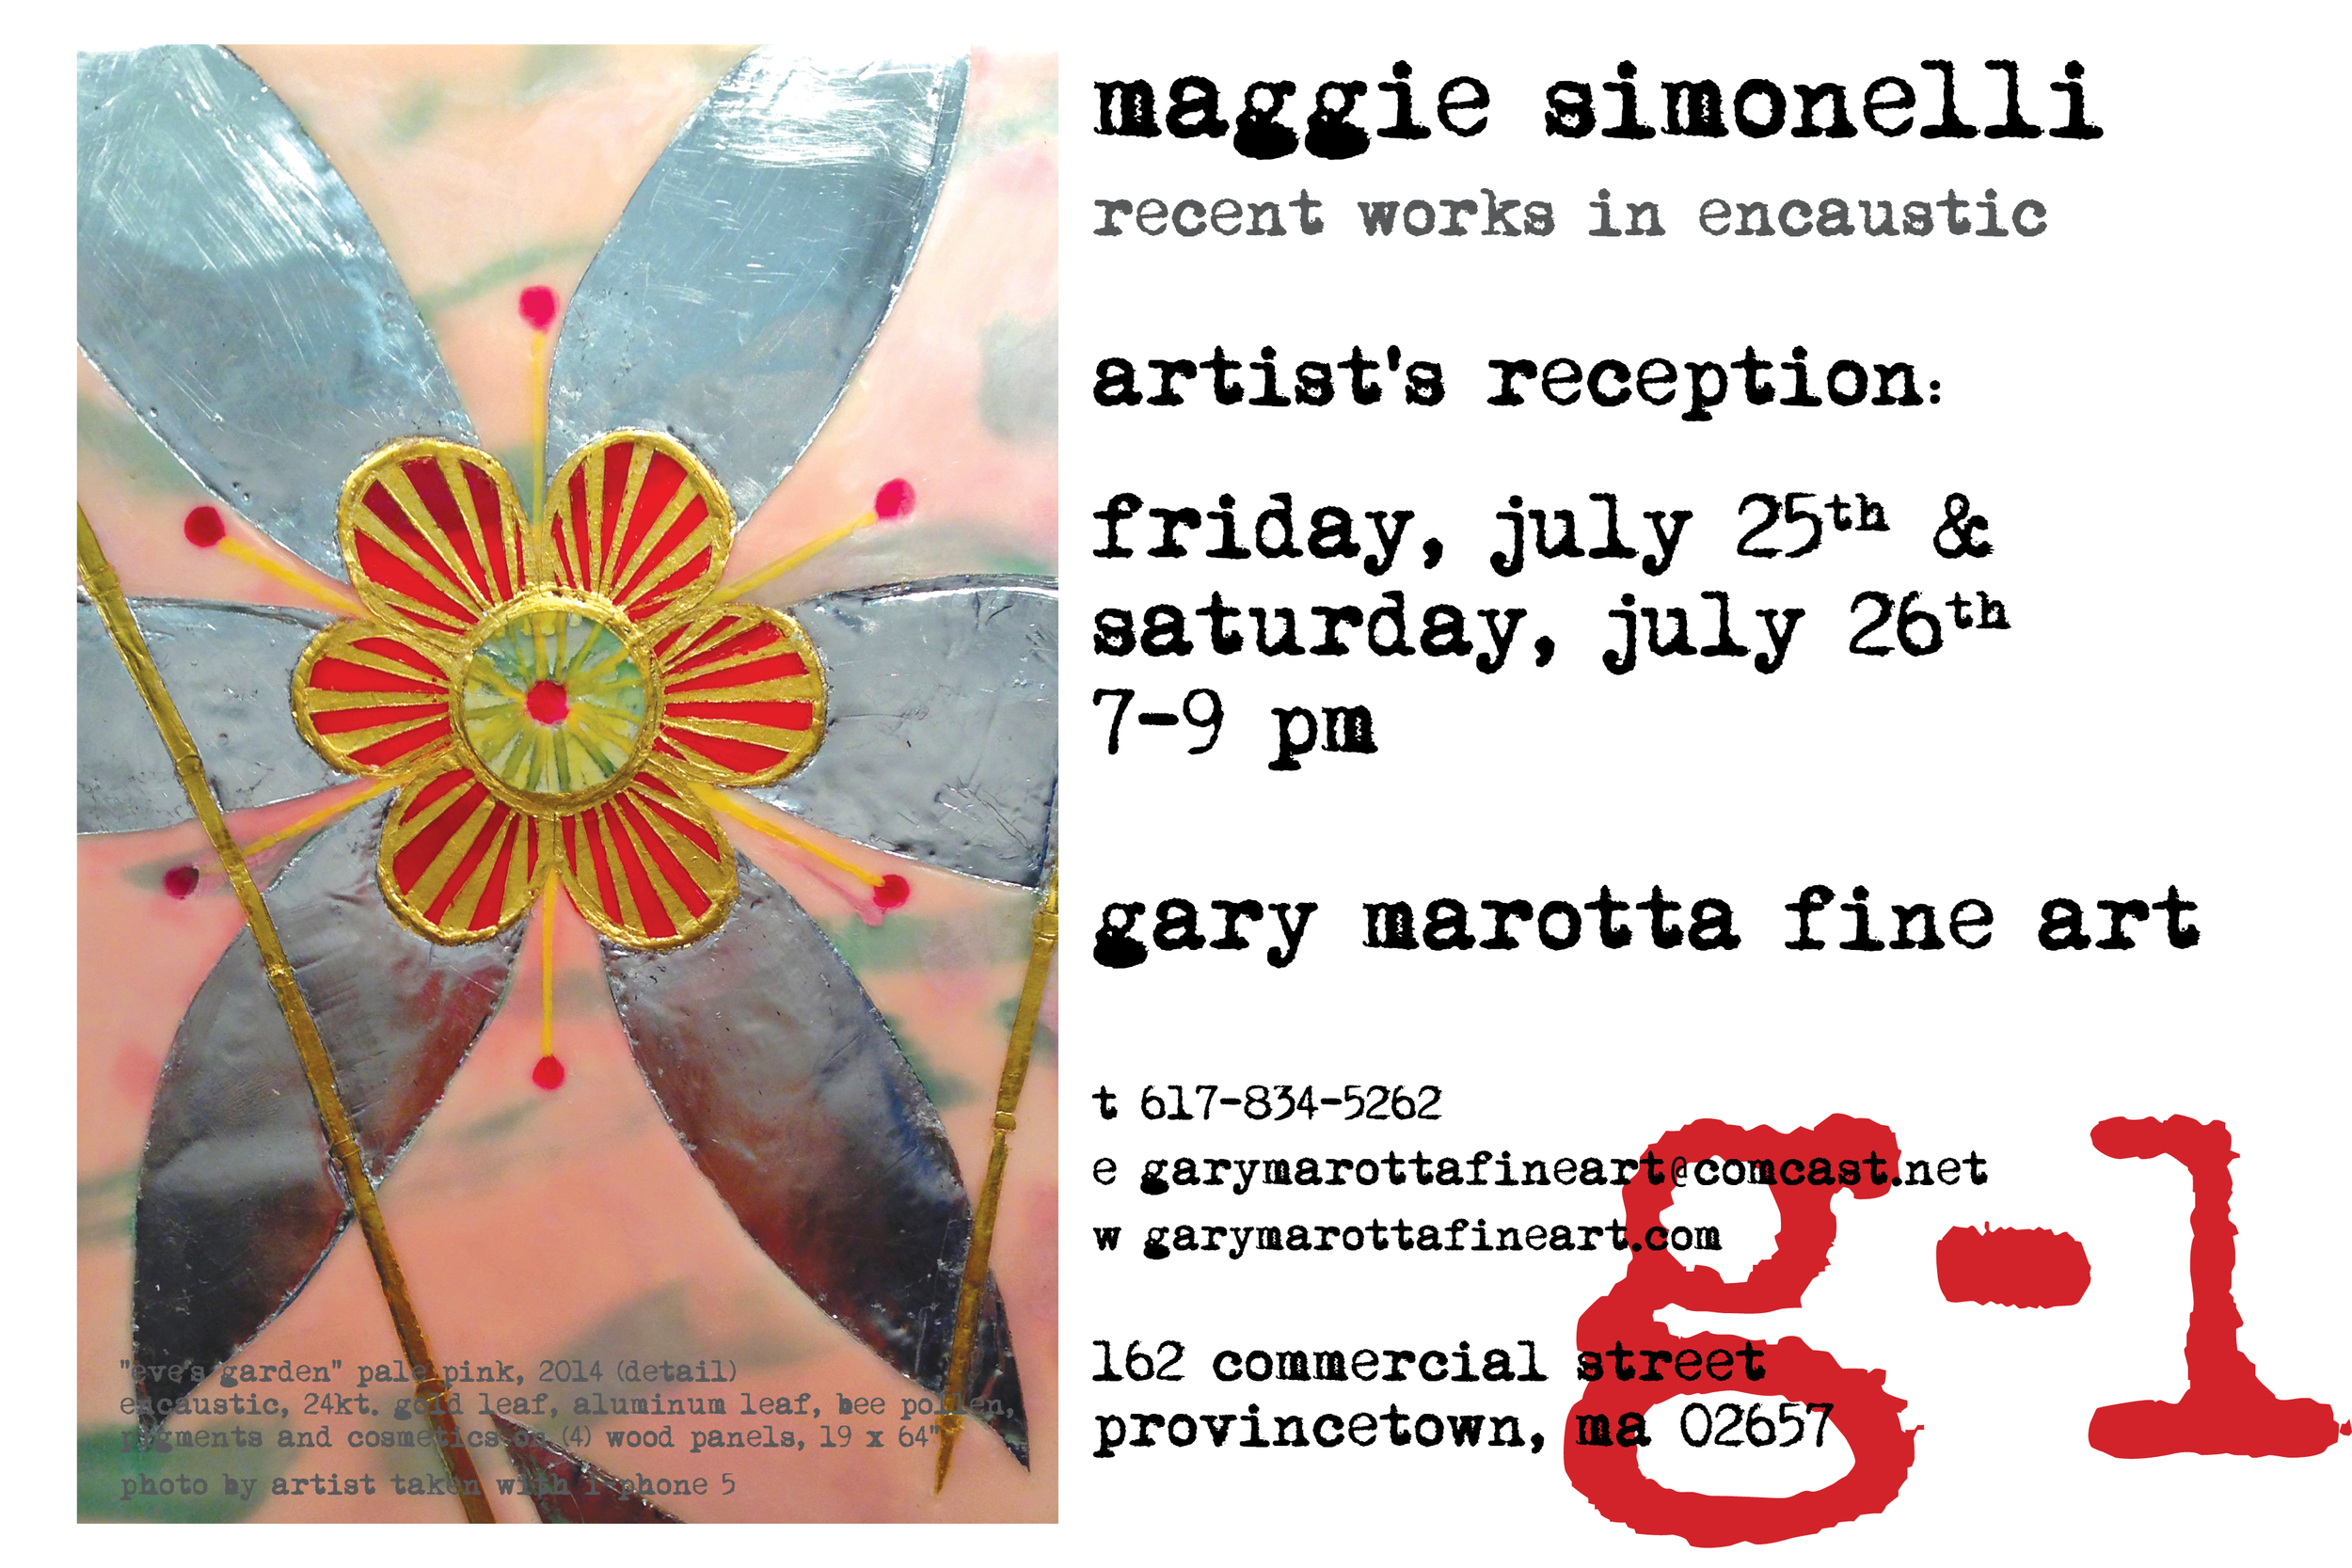 Invitation to Maggie Simonelli's painting exhibition at GMFA Summer 2014